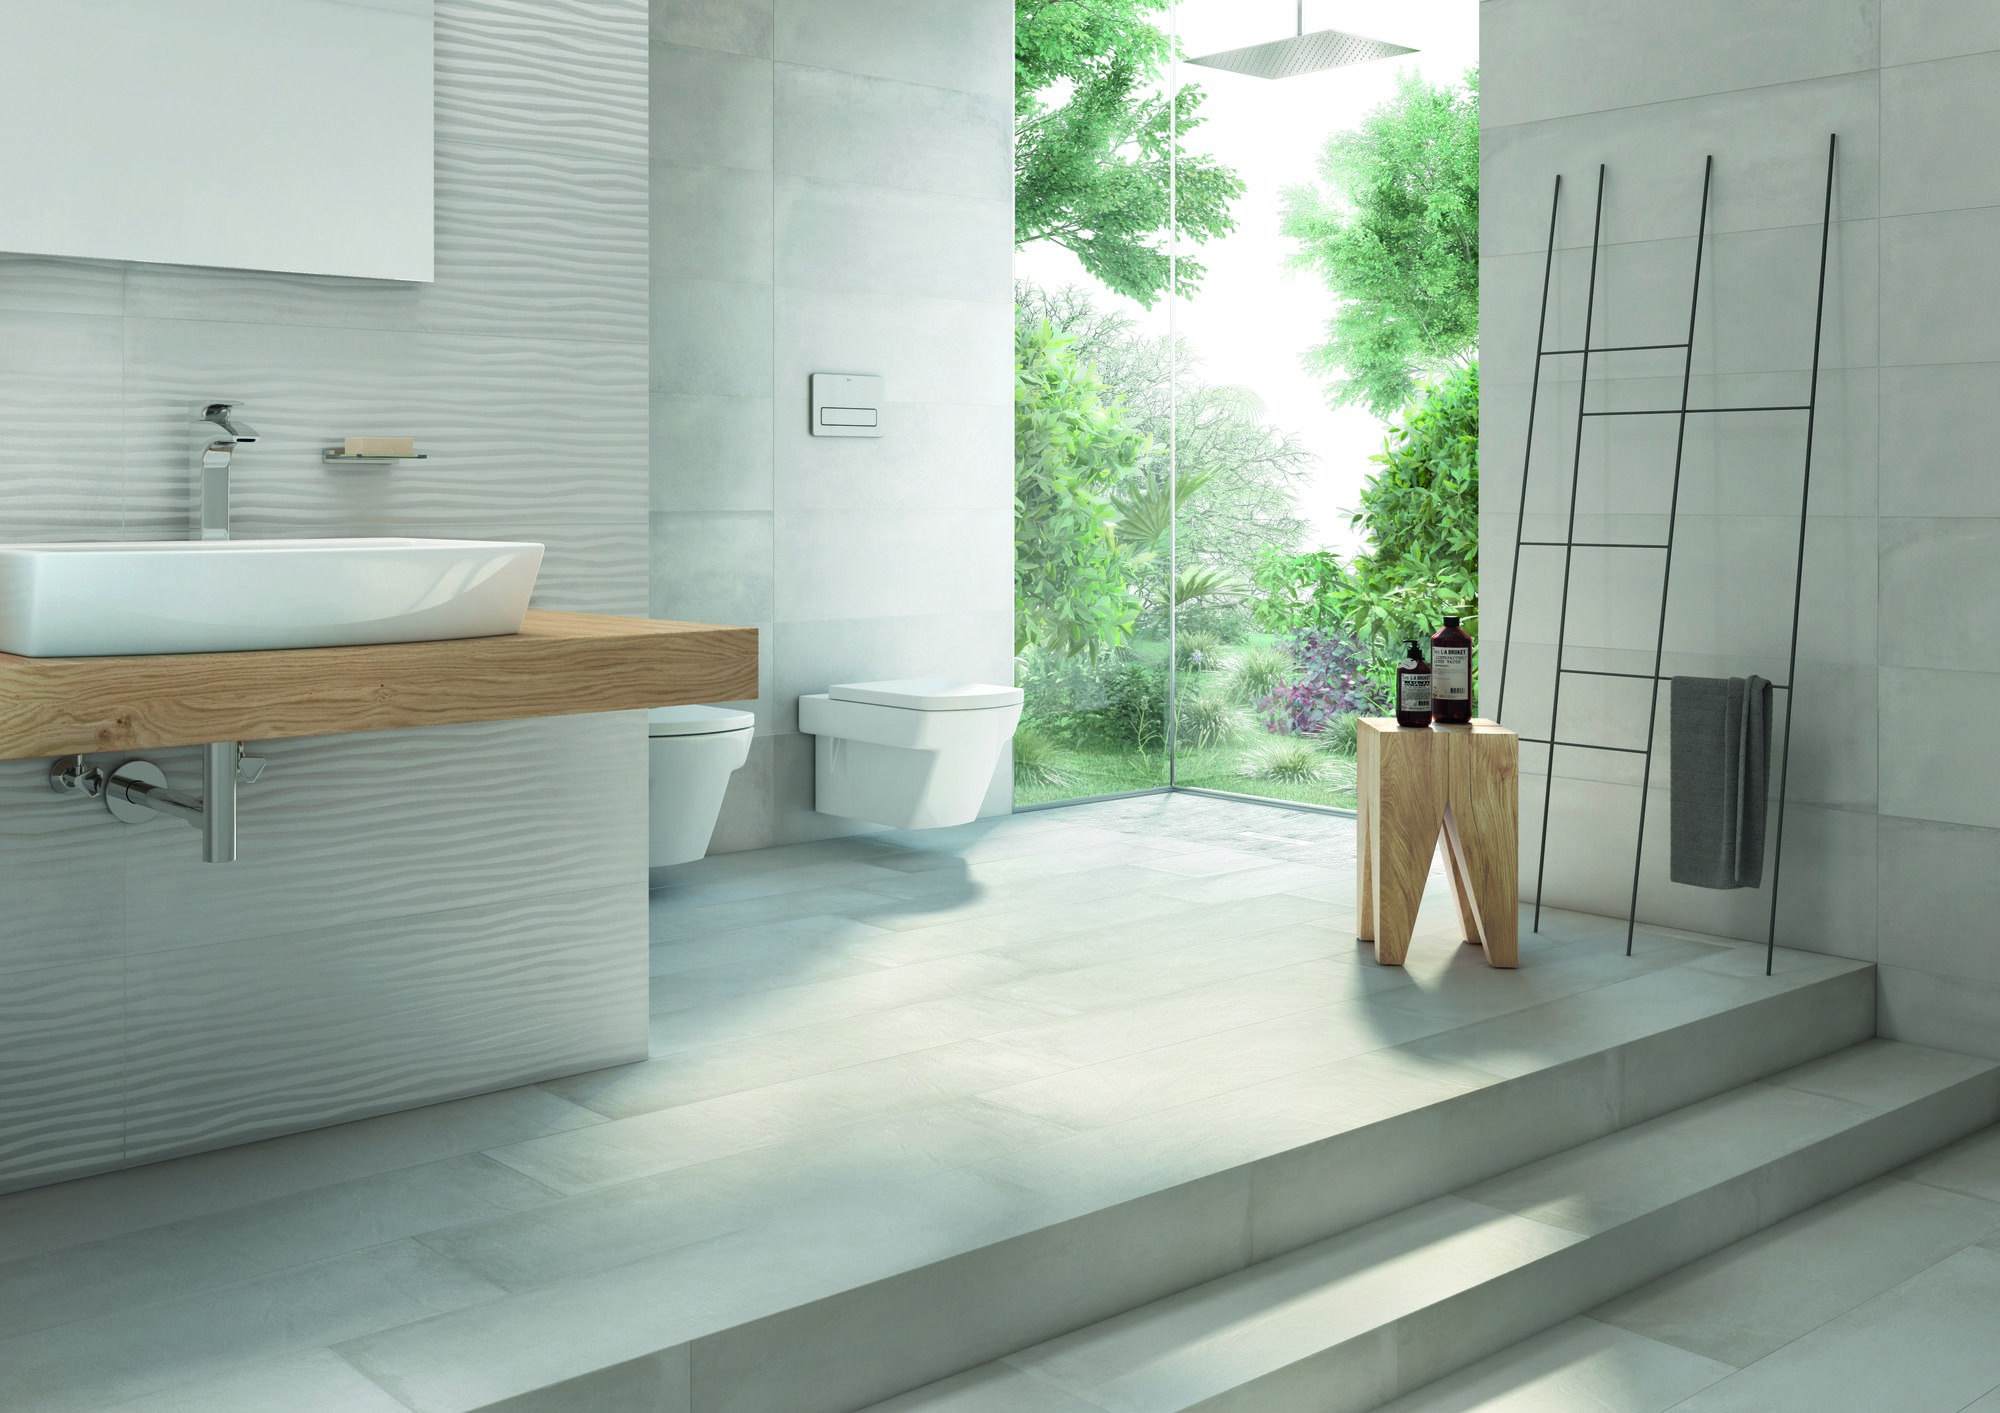 chelsea gris ceramic wall by roca http rocatilegroup com floor and wall tiles for kitchen bathroom ourdoors roca tile usa